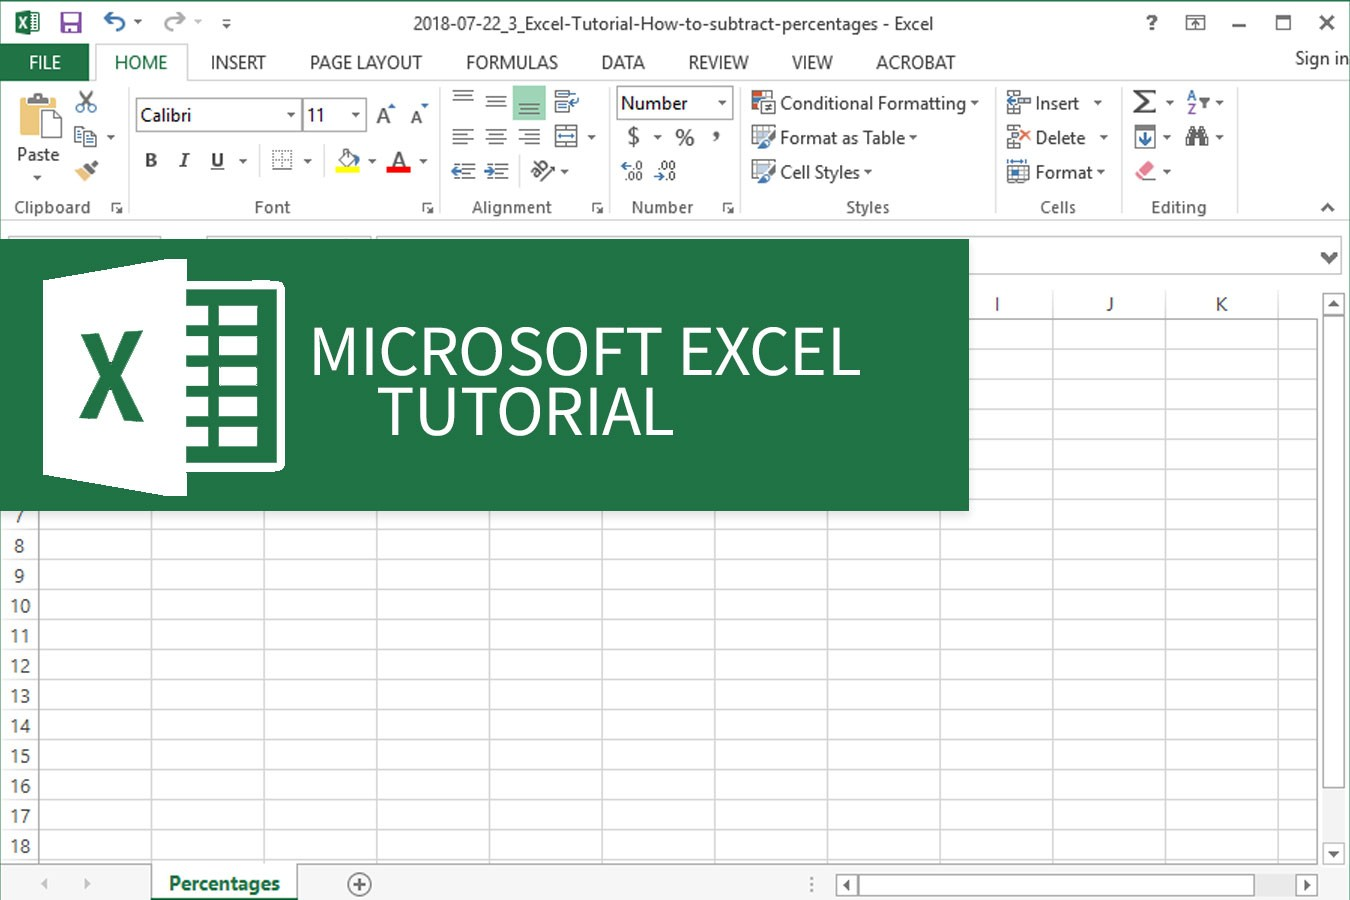 Excel-Tutorial-How-to-subtract-percentages_0